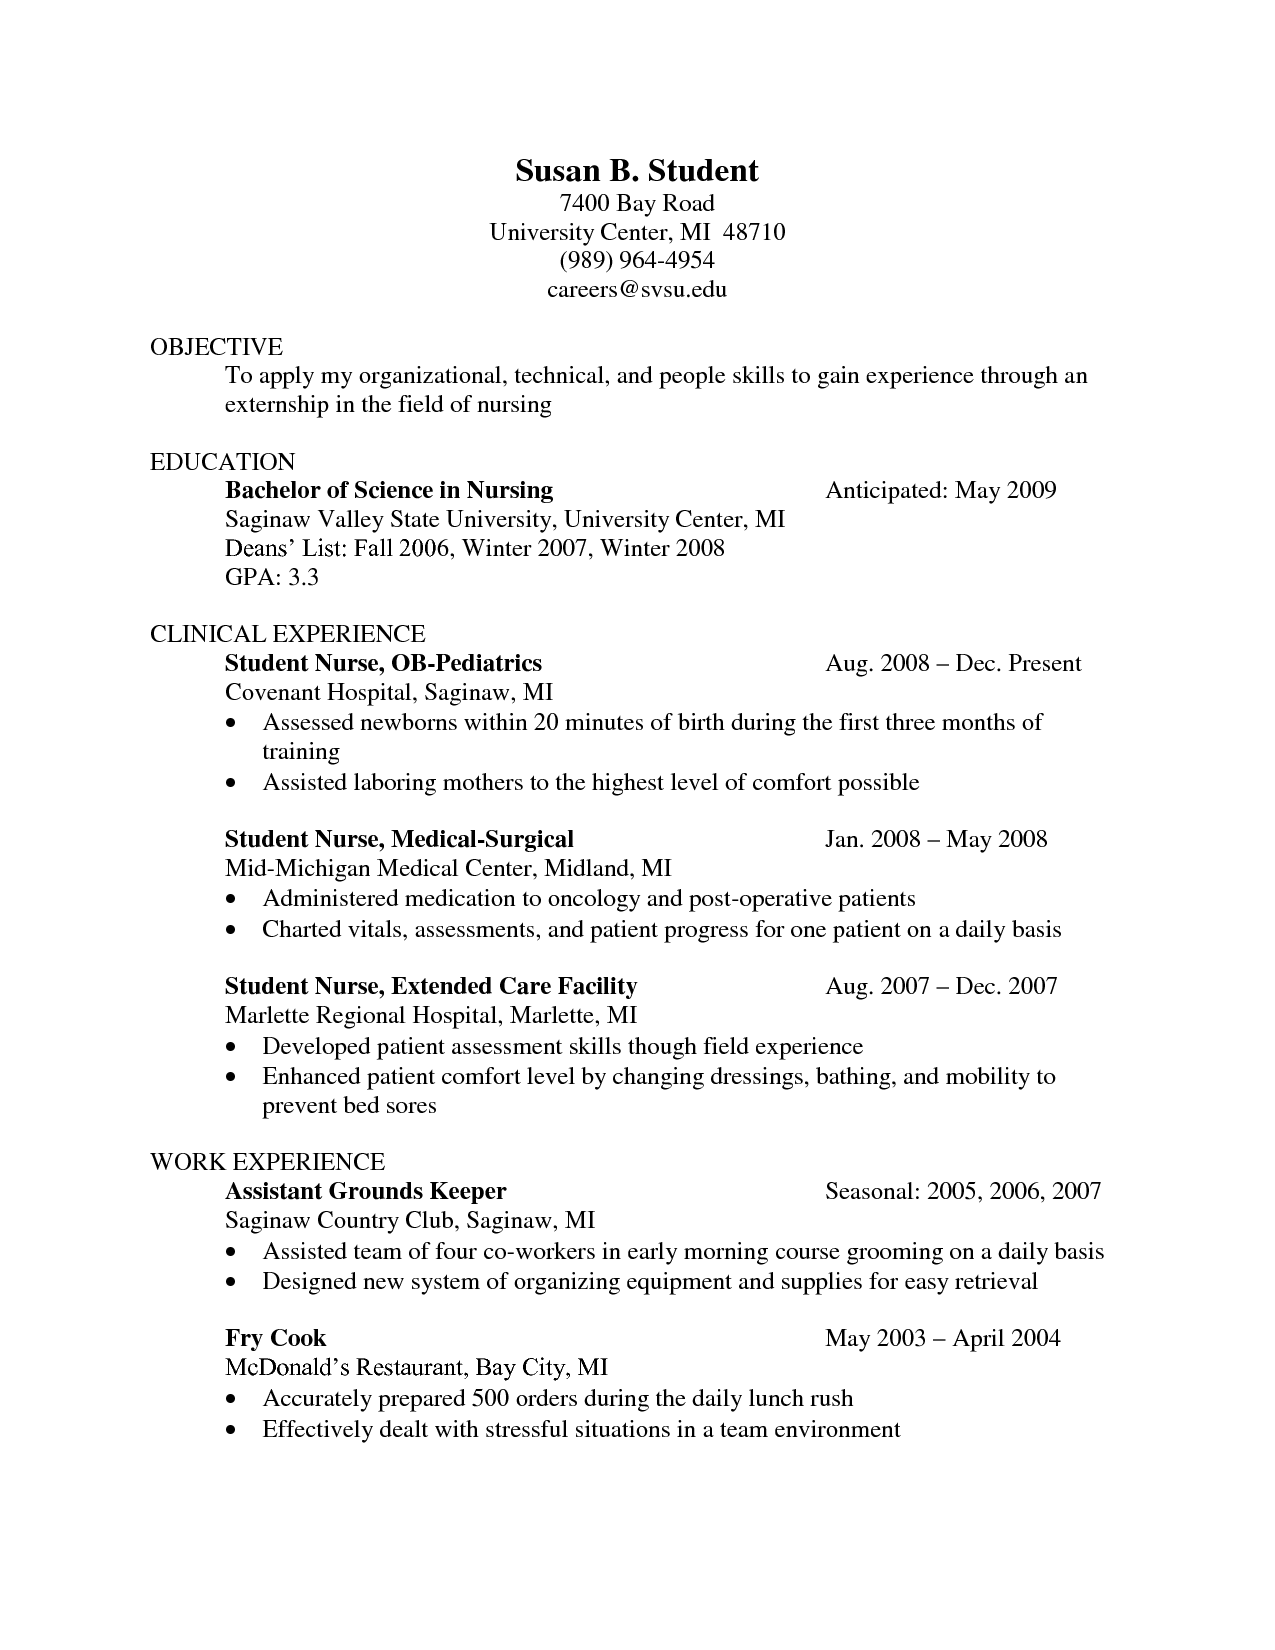 Oncology Nurse Resume Templates - Http://Www.Resumecareer.Info